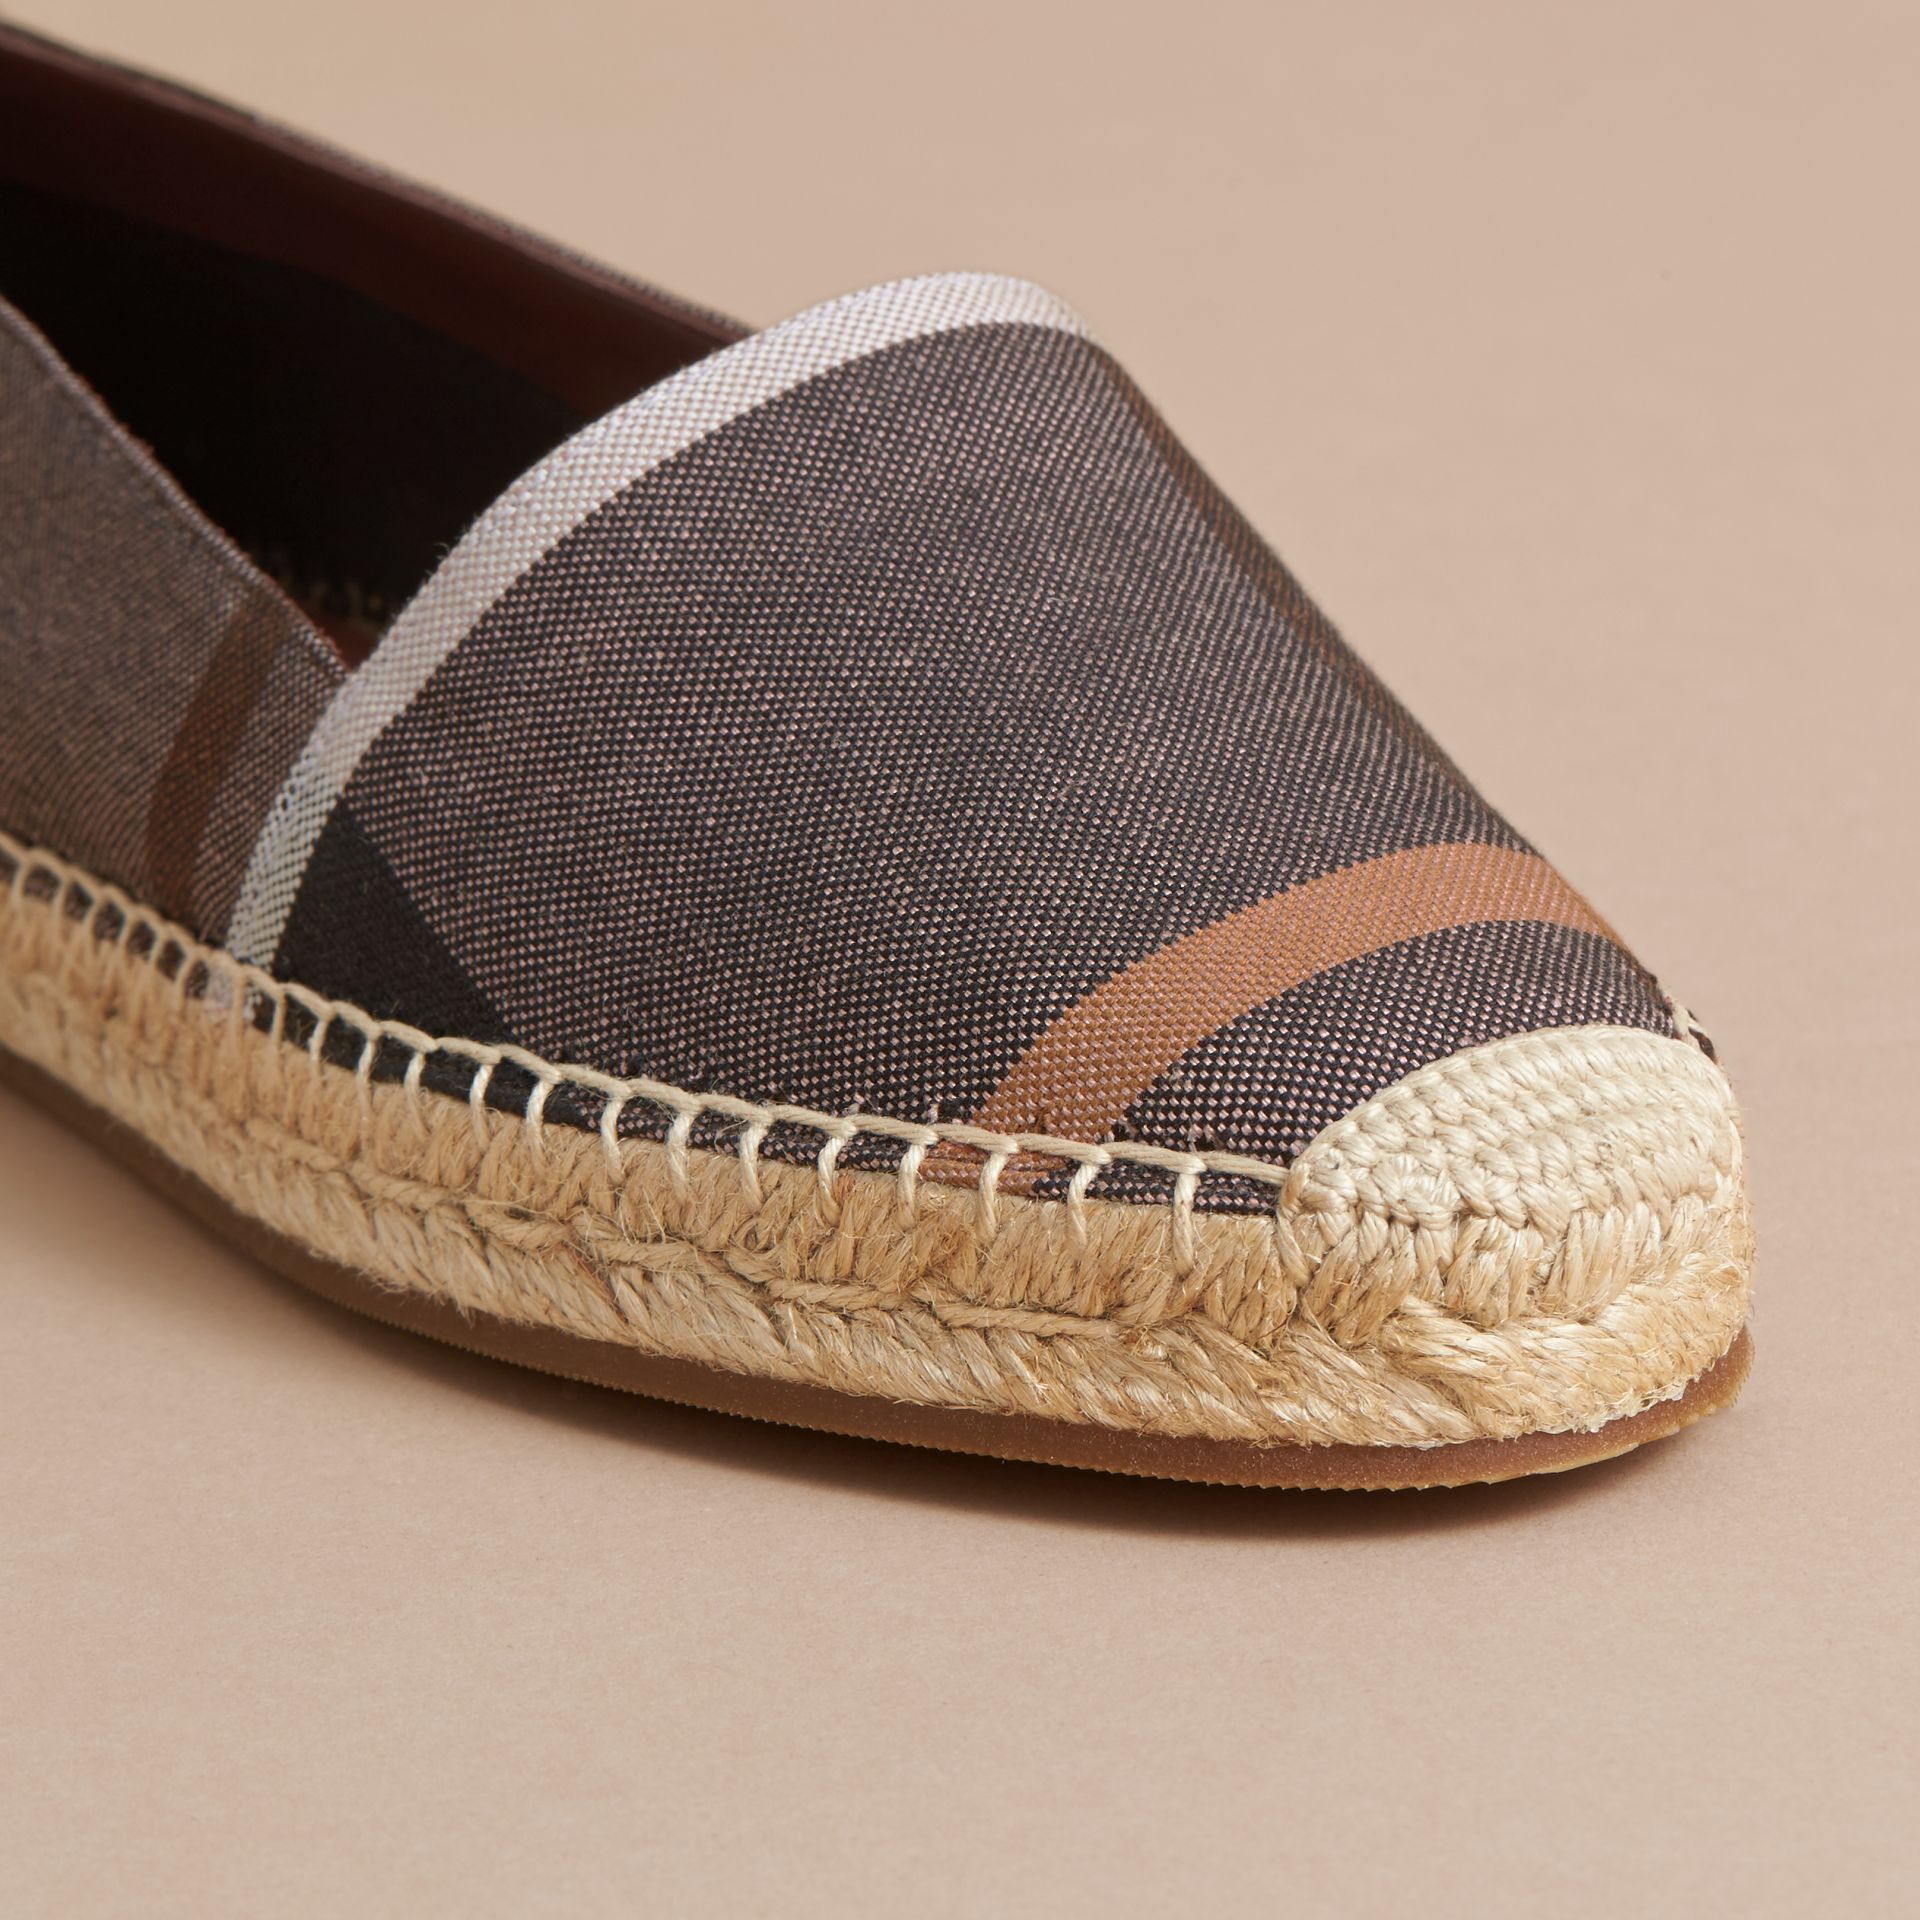 Check Linen Cotton Espadrilles in Cerise Purple - Women | Burberry Hong Kong - gallery image 2